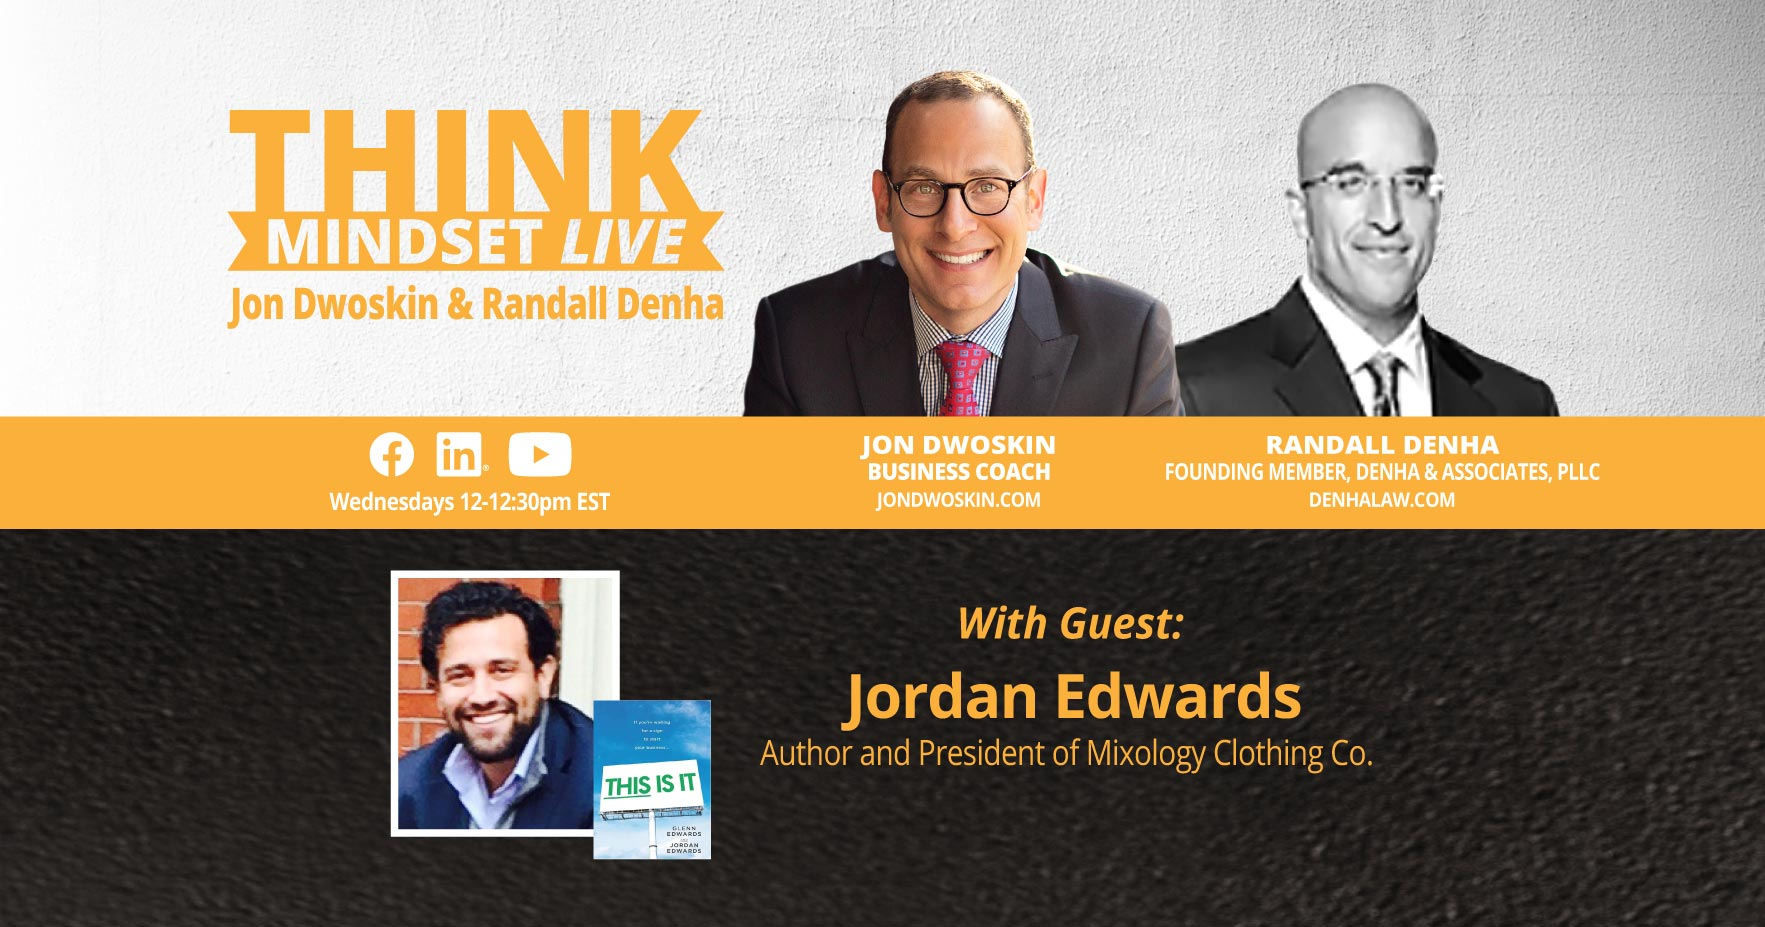 THINK Mindset LIVE: Jon Dwoskin and Randall Denha Talk with Jordan Edwards